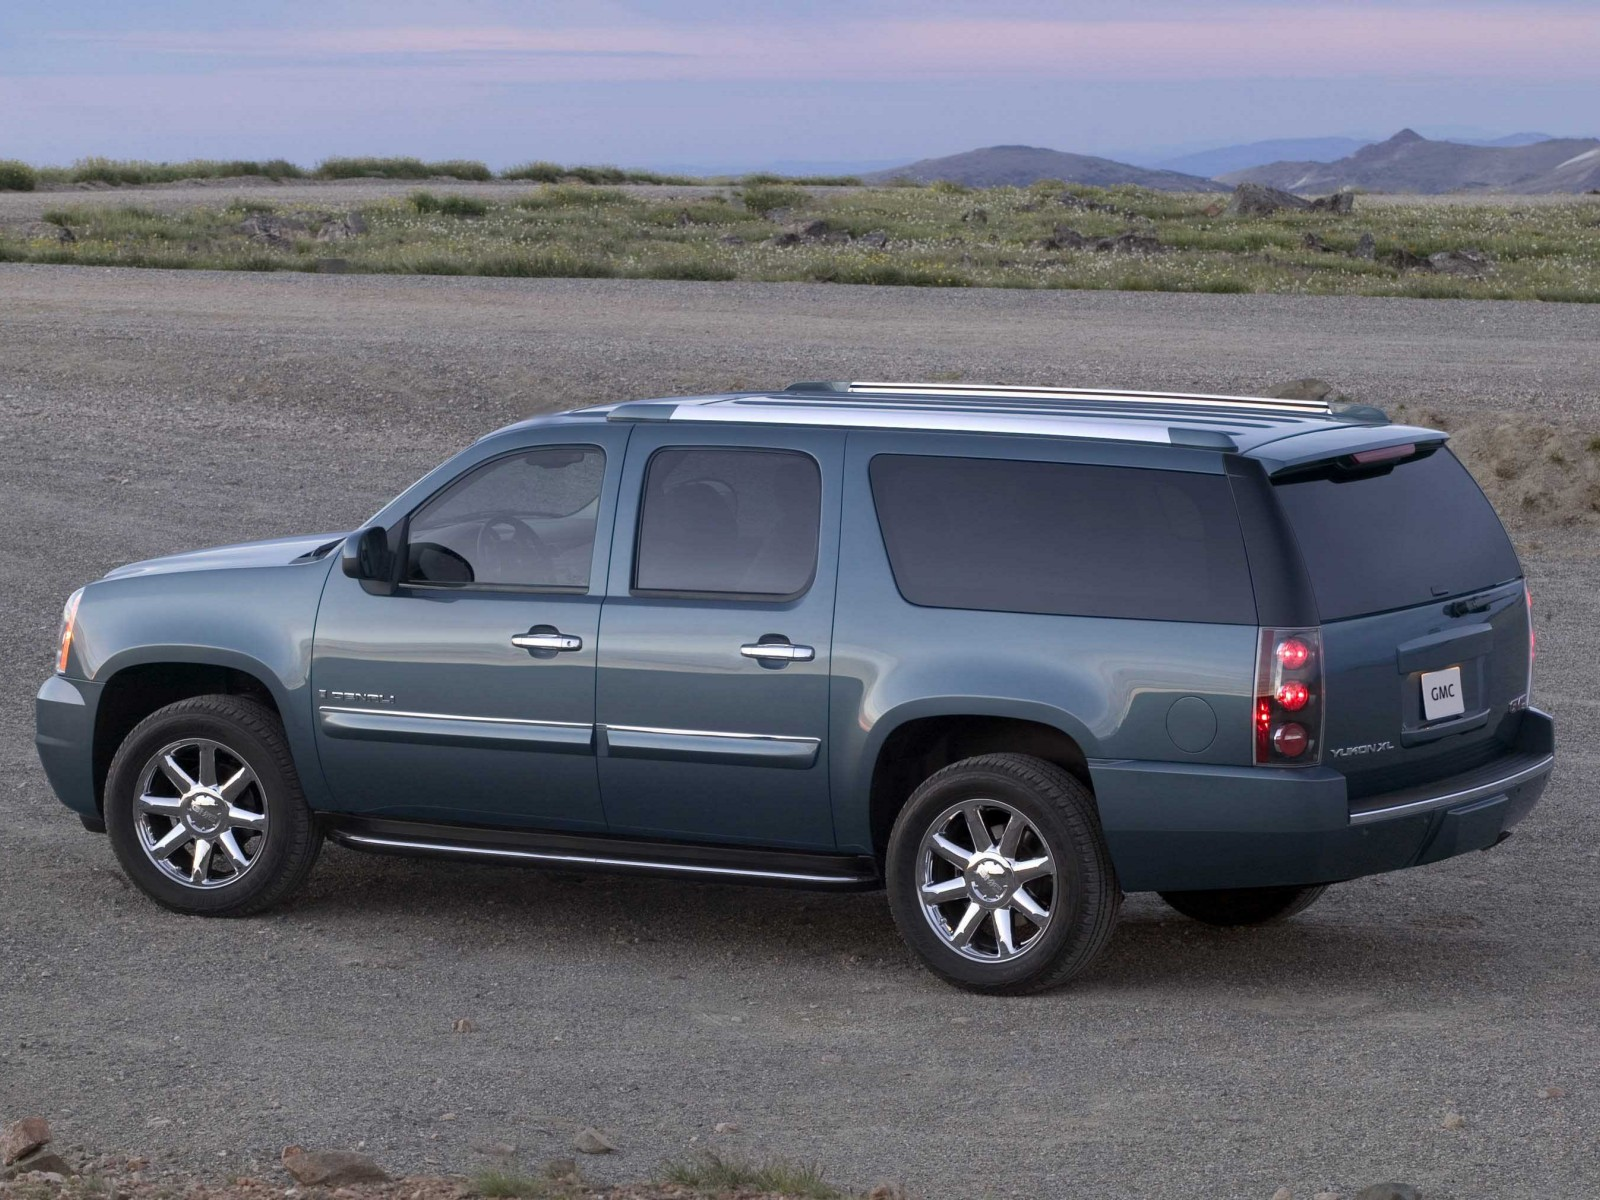 2009 gmc yukon xl denali motor desktop. Black Bedroom Furniture Sets. Home Design Ideas